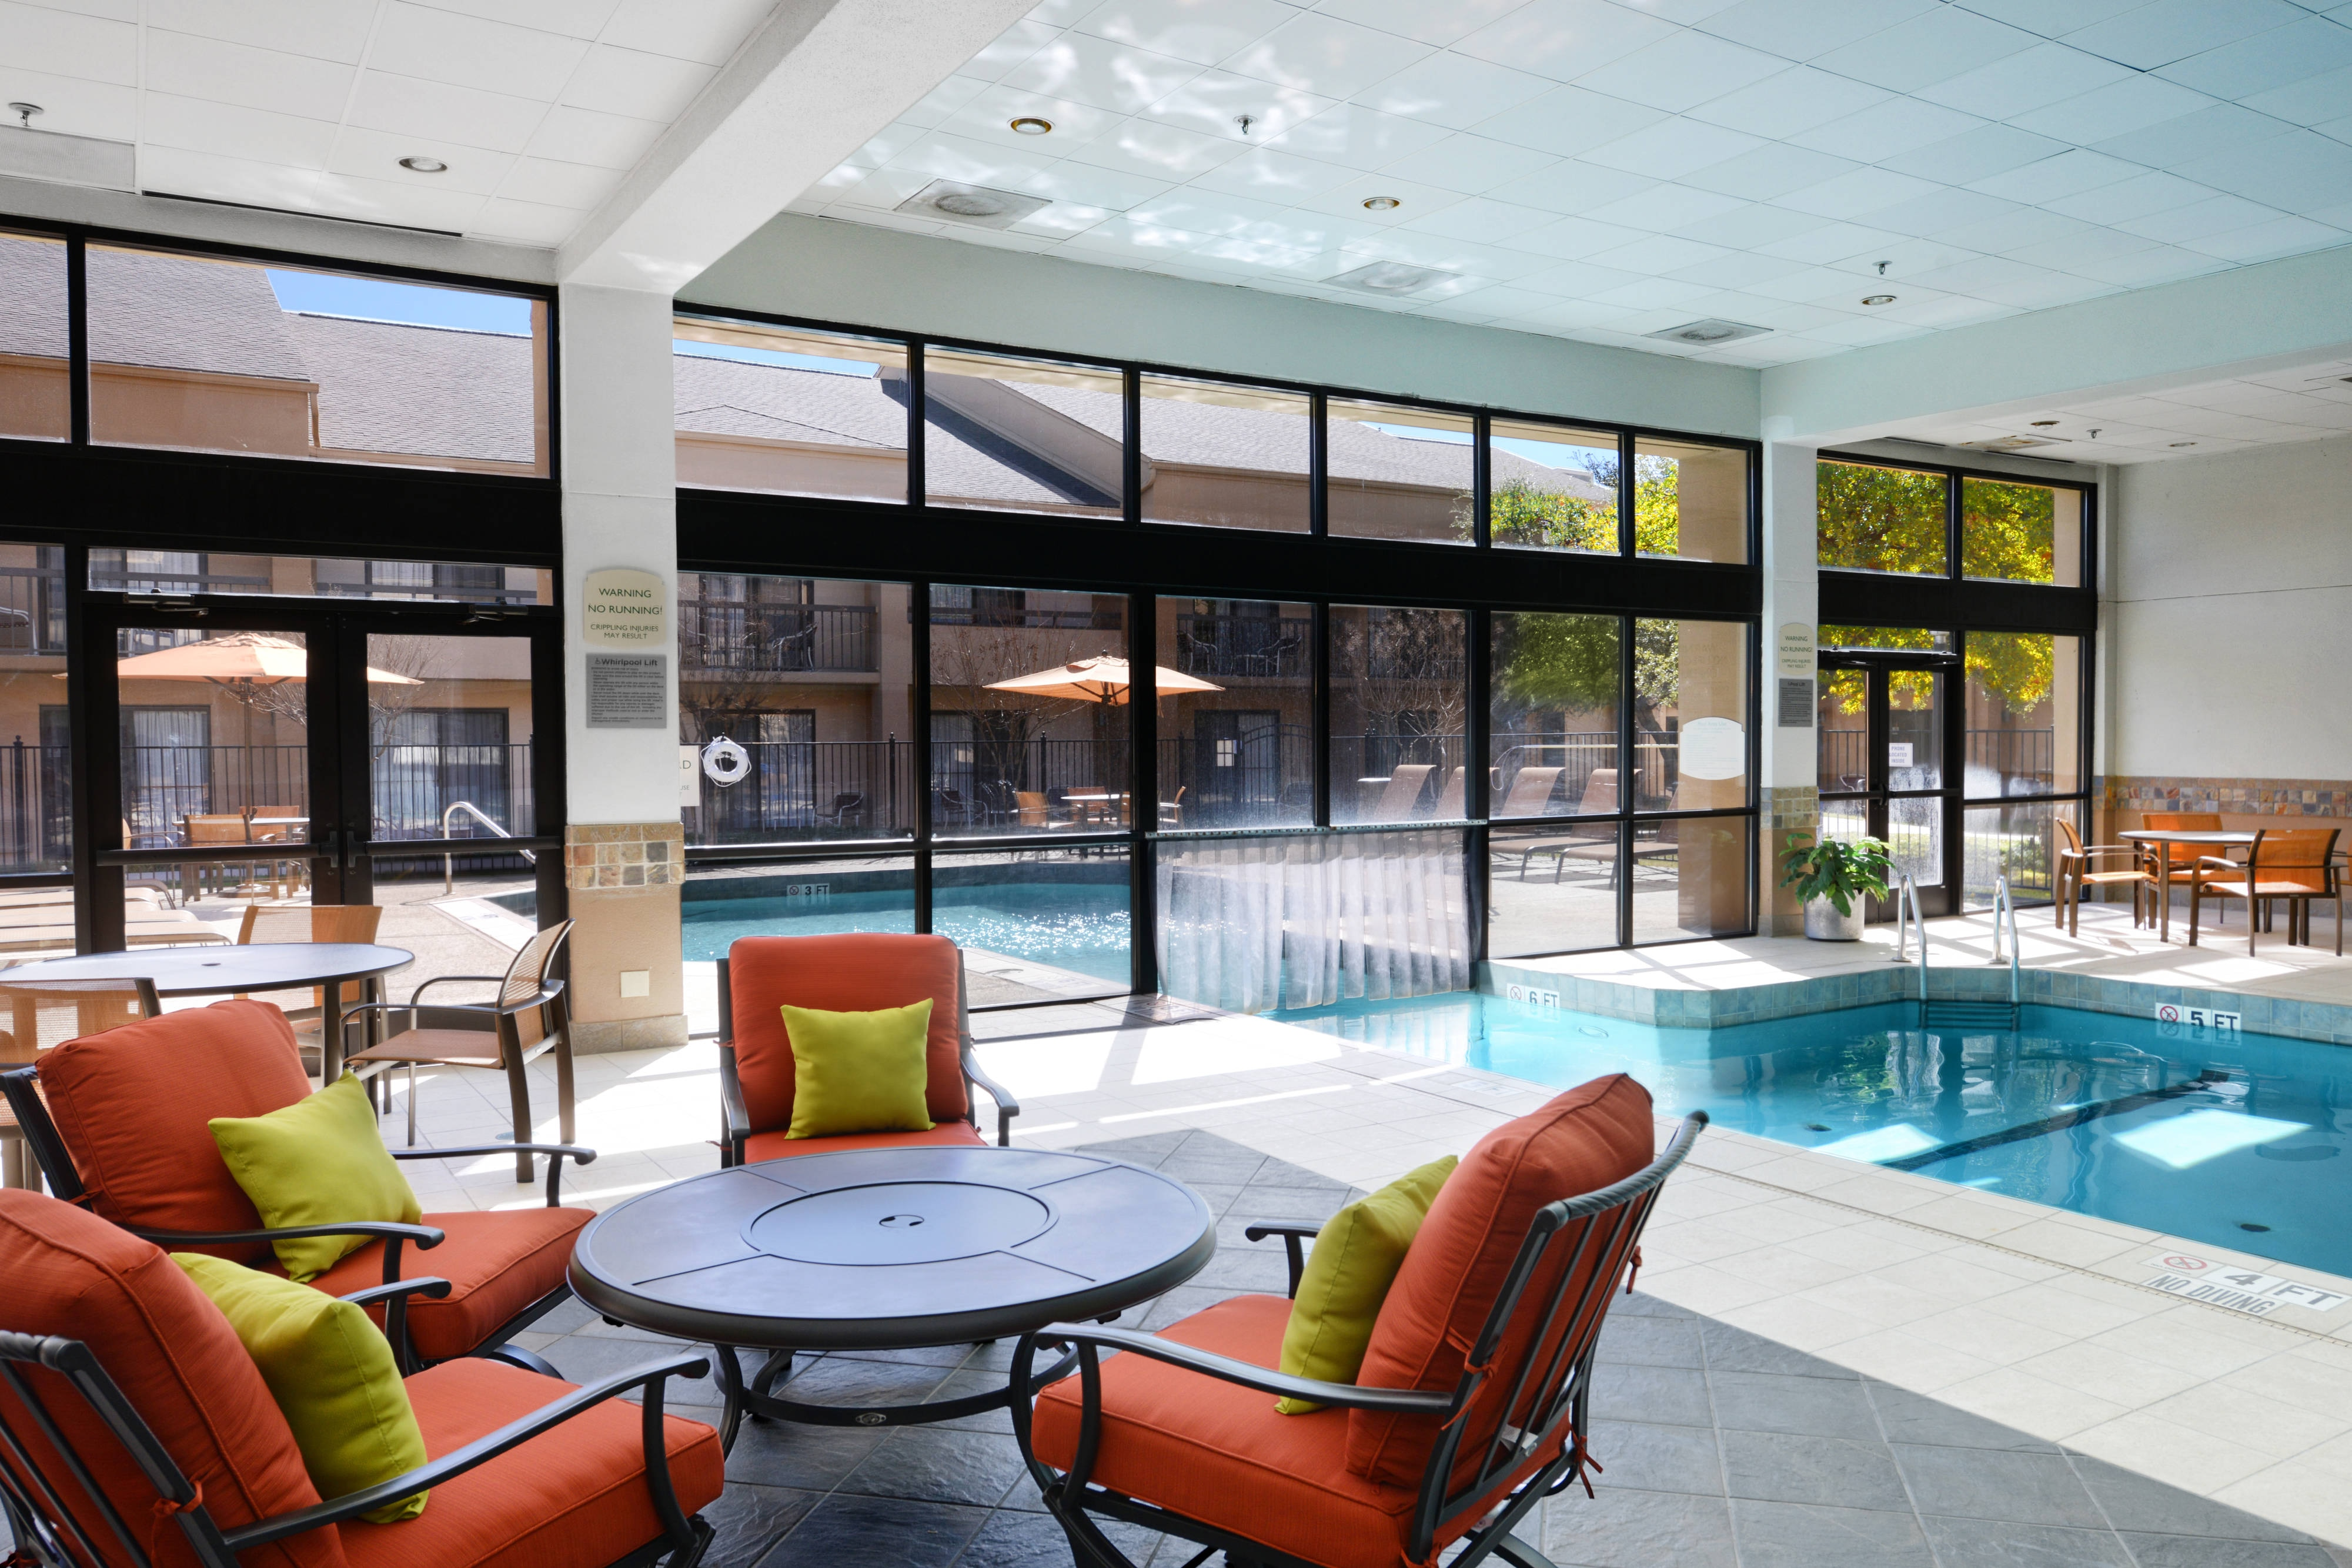 Indoor/Outdoor Pool with Poolside Seating